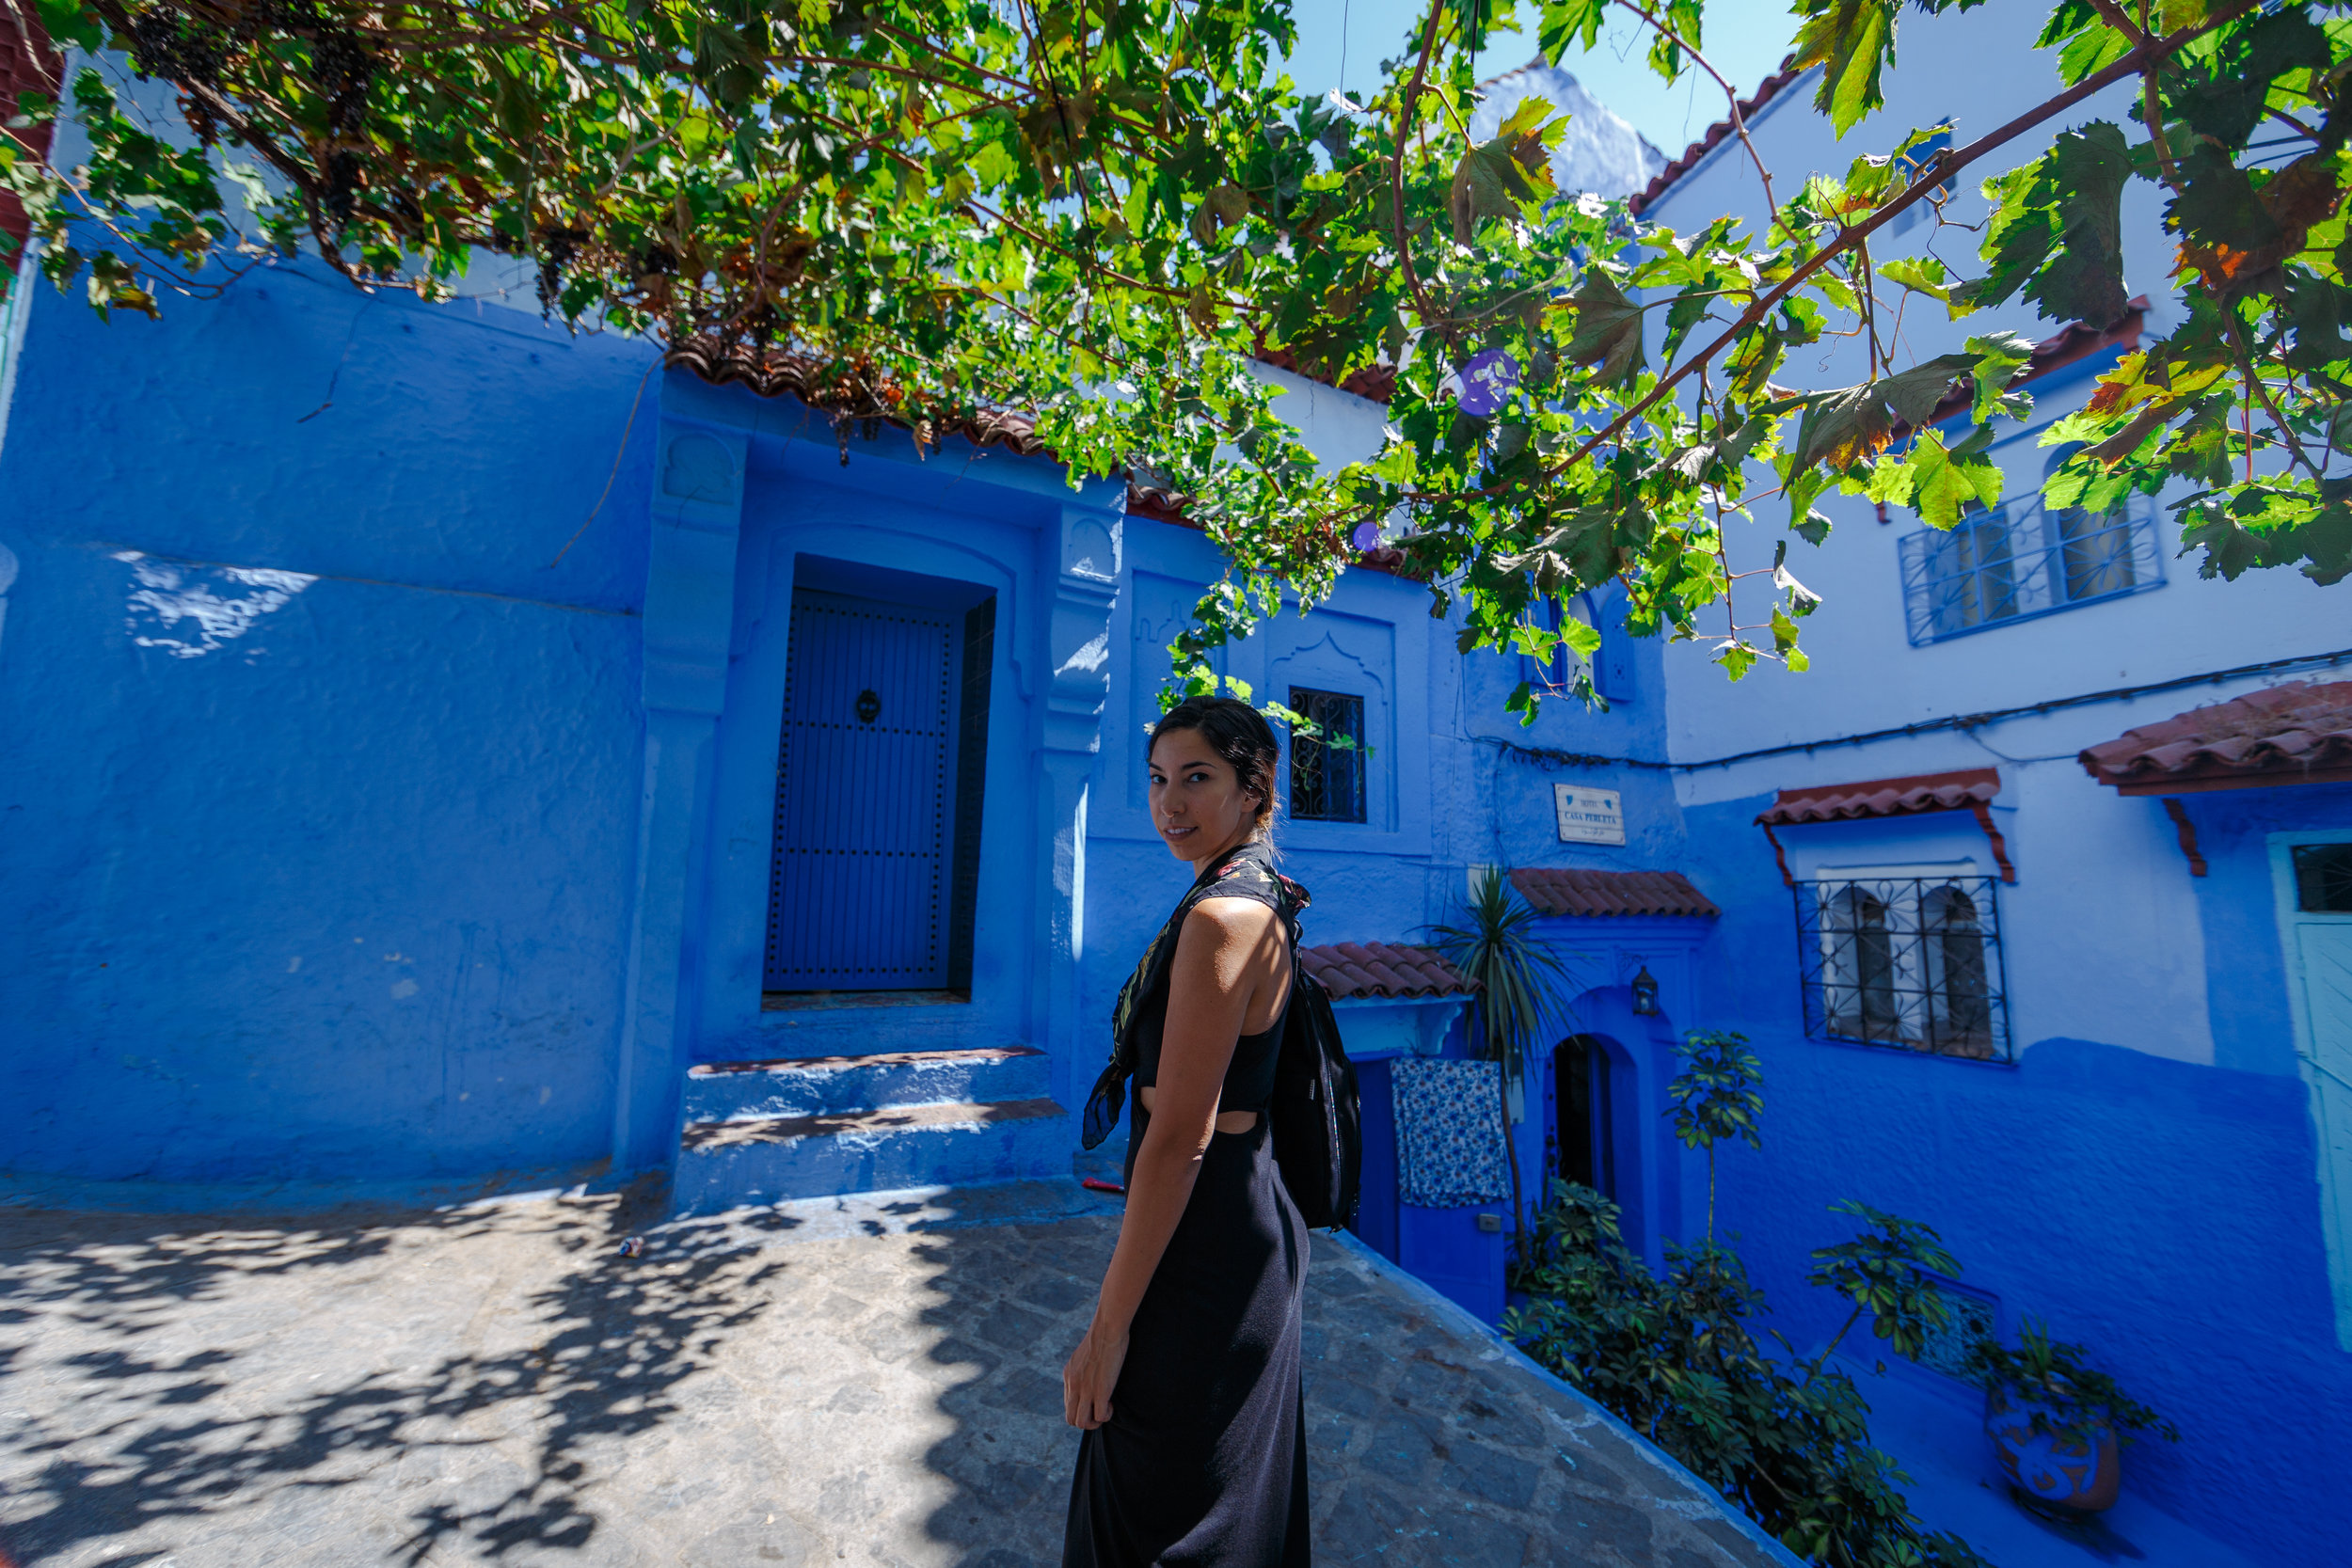 Exploring the streets of Chefchaouen.